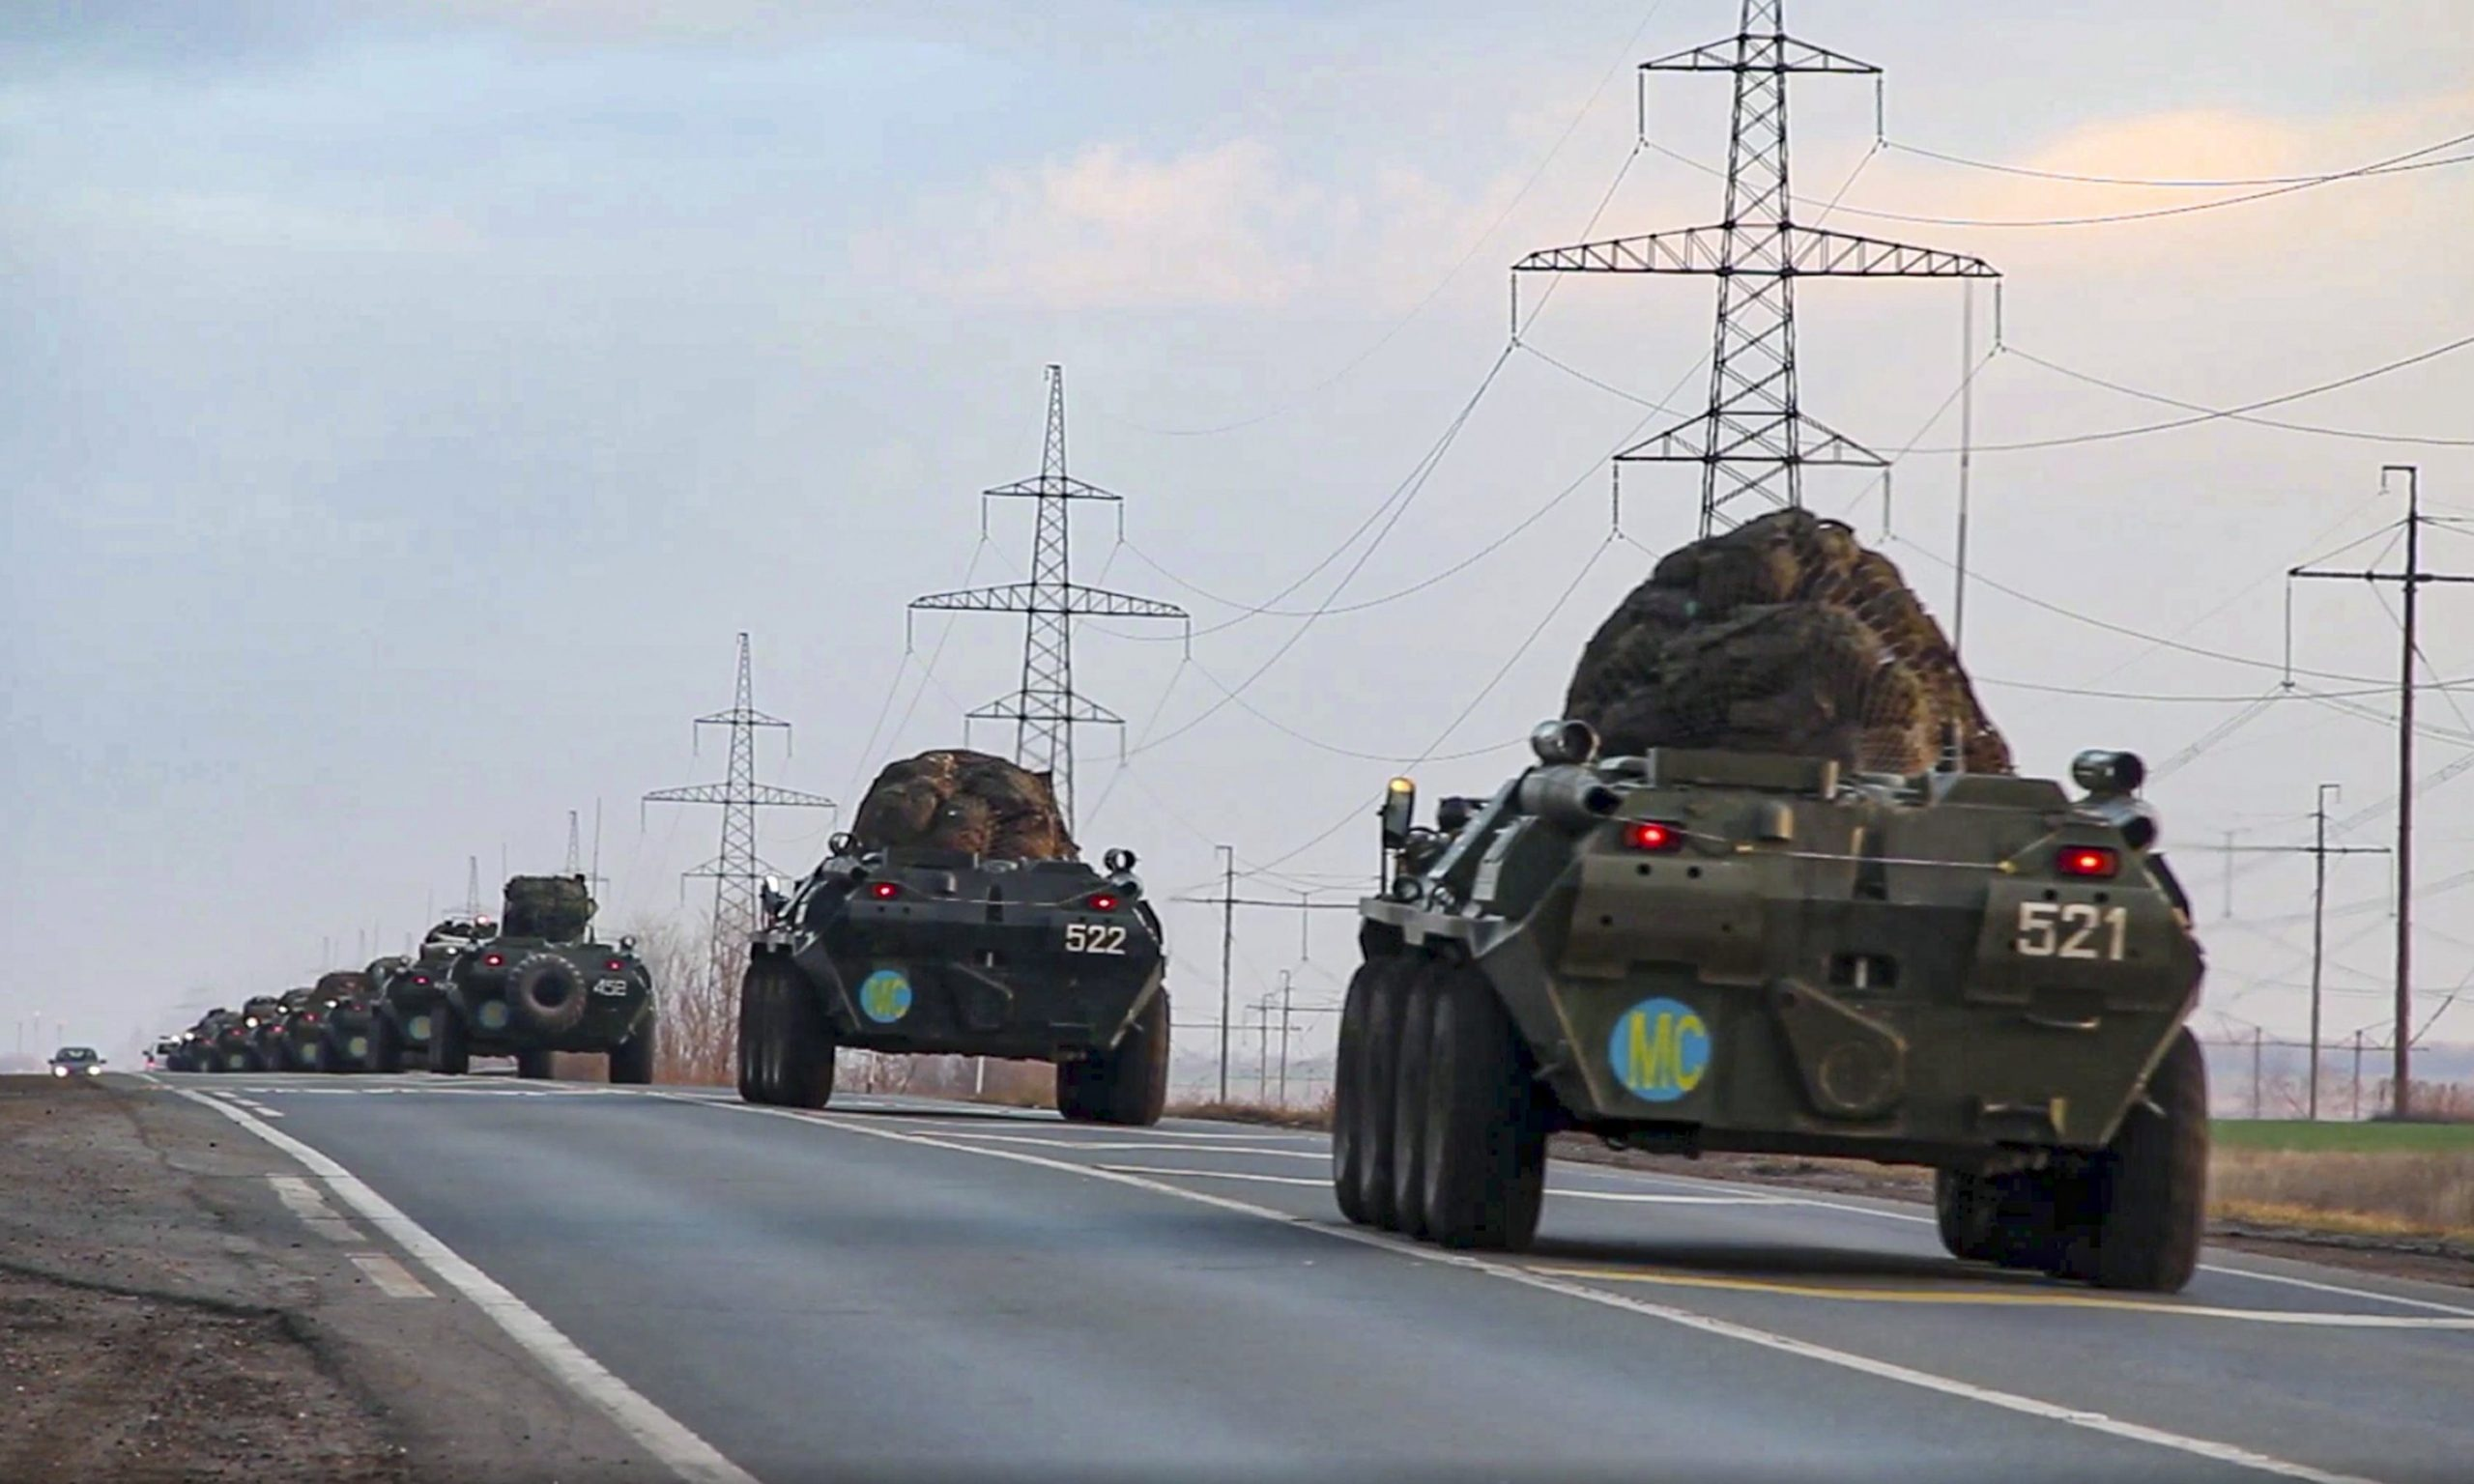 """Russian Peacekeepers Get Into Position, As France Offers """"Message Of Support To Armenian Friends"""" (Updated)"""